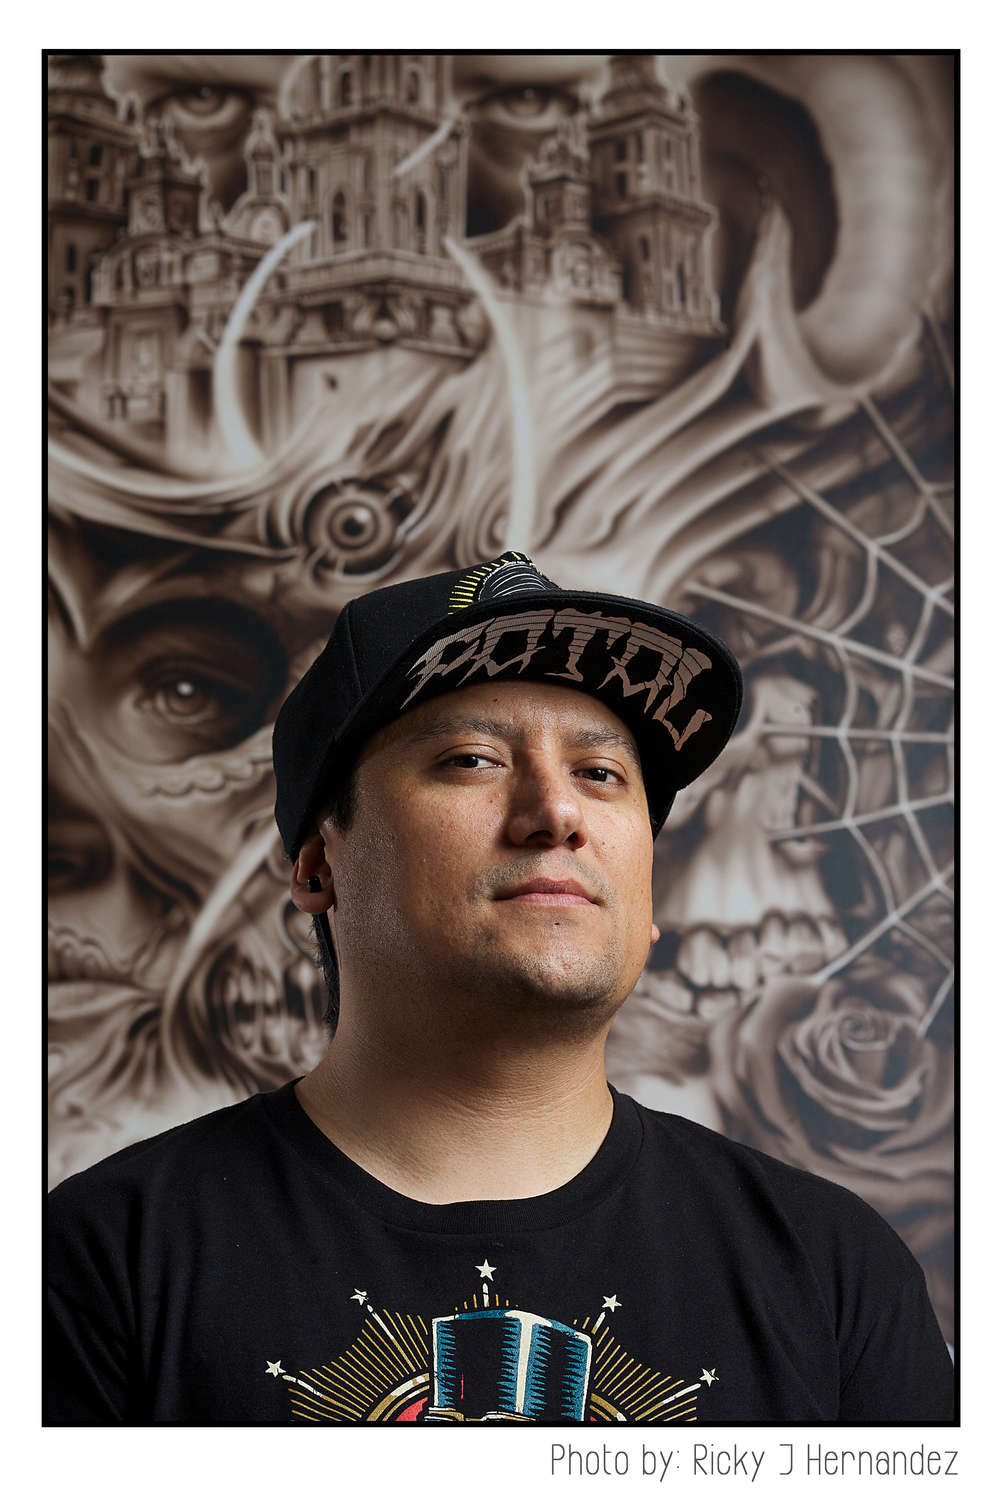 Photos for a tattoo magazine. Portraits of artist Rebel Hernandez. Tattoo & airbrush artist.